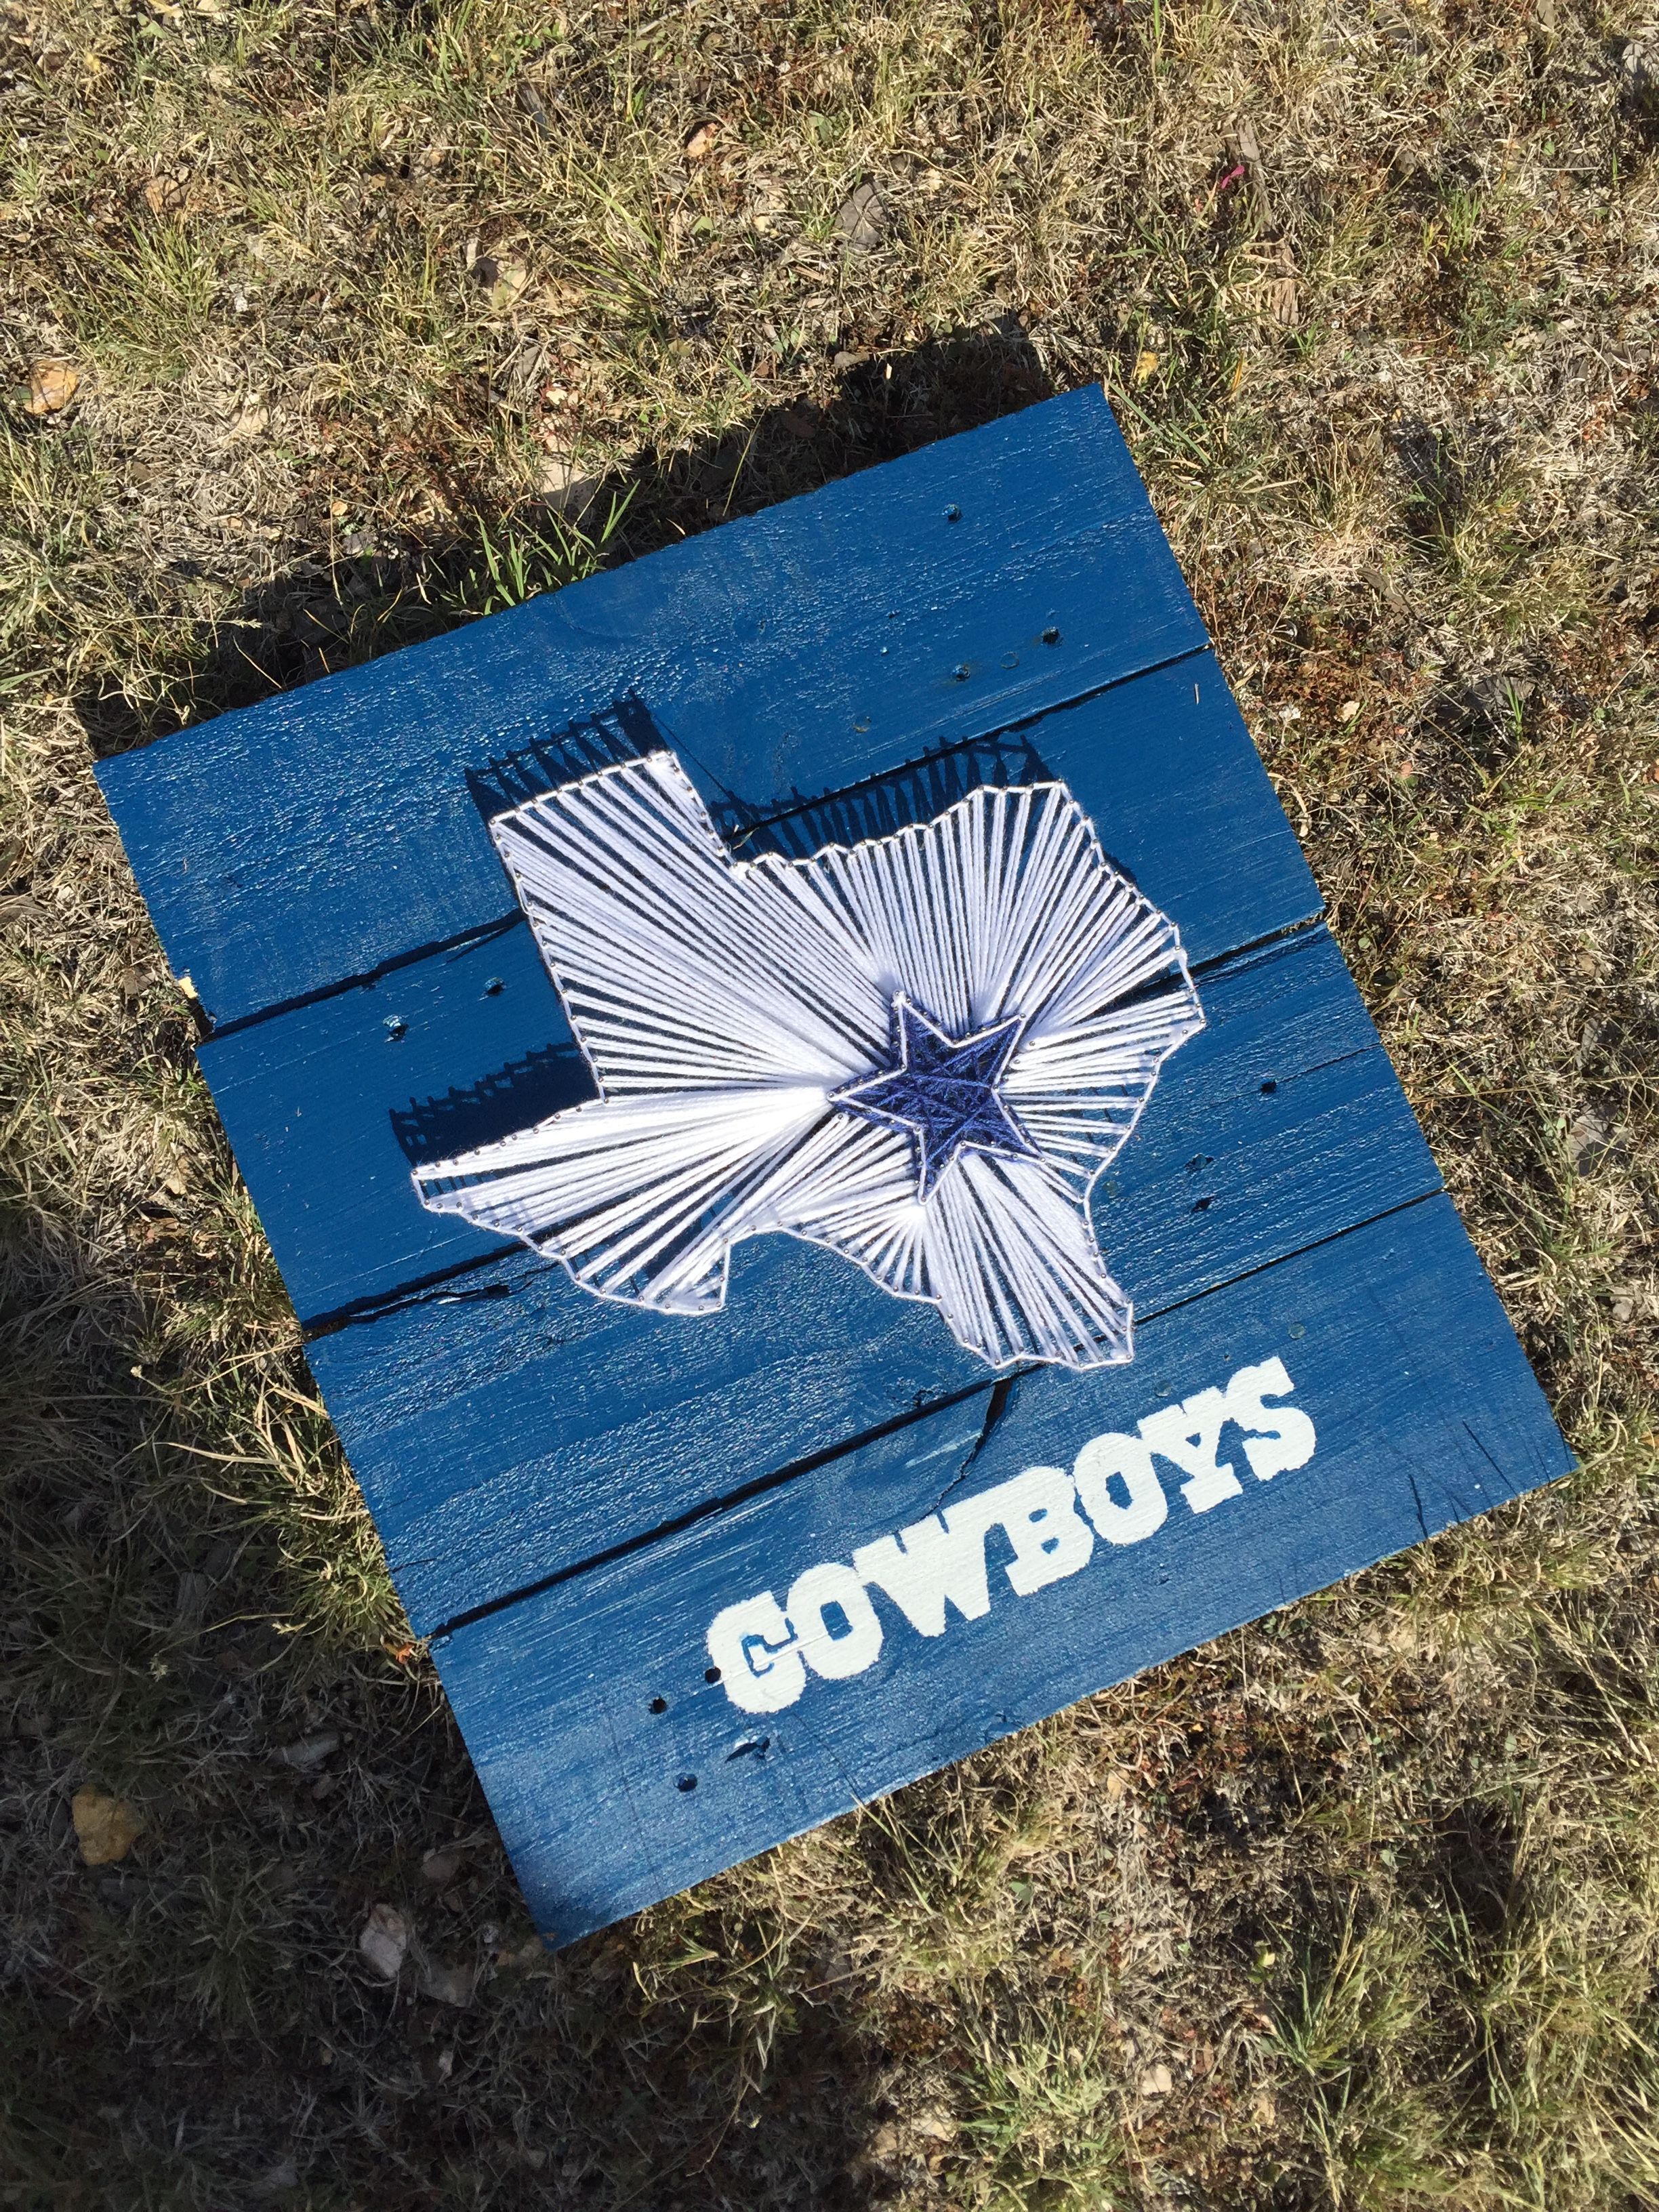 Dallas Cowboys Folding Chairs Zebra Print String Art Made From Upcycled Pallets